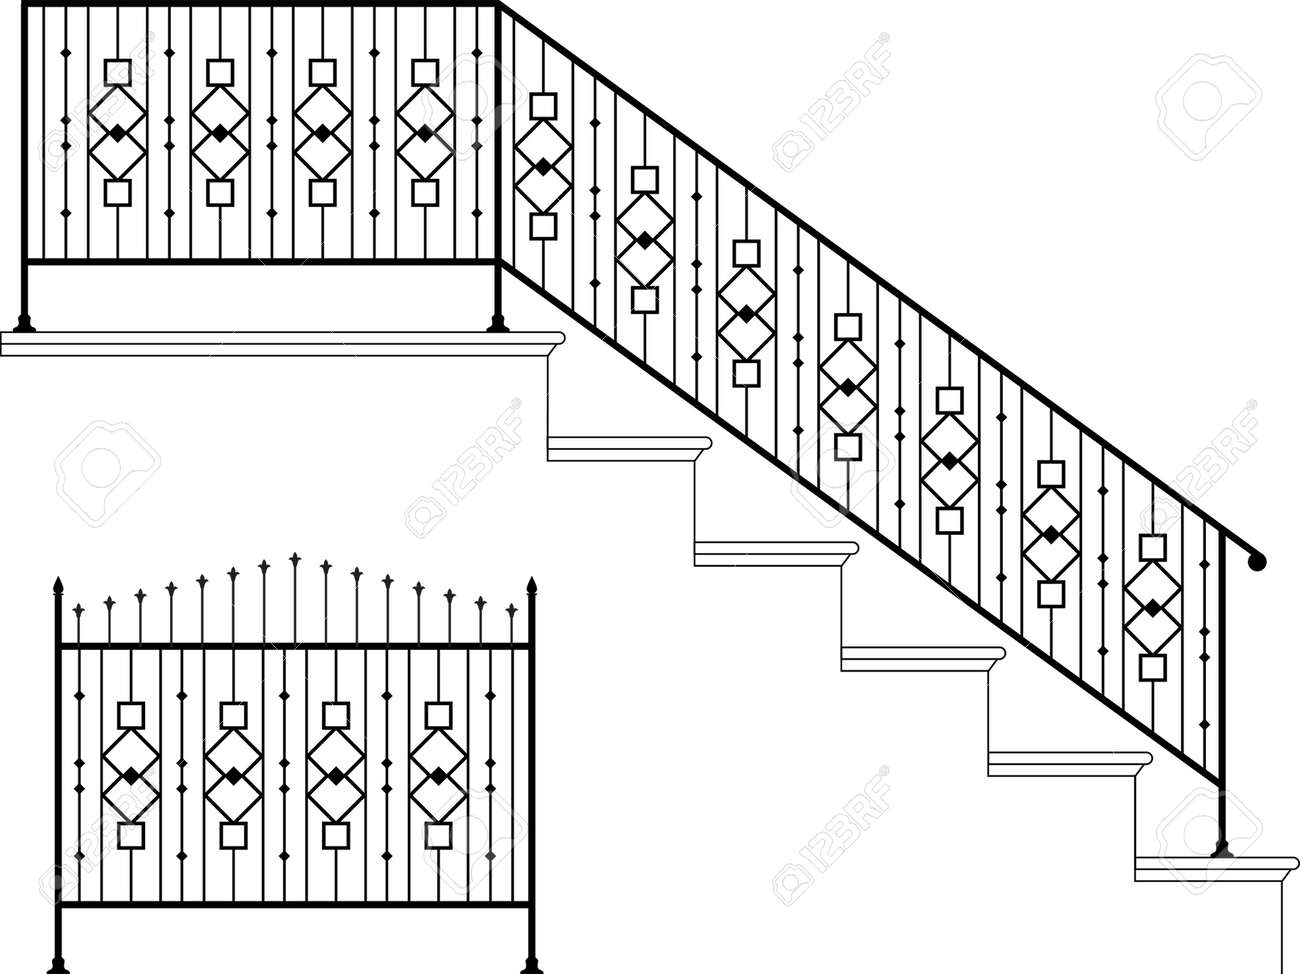 Wrought Iron Stair Railing Design Vector Art Royalty Free Cliparts   Stairs Railing Designs In Iron   Rot Iron Staircase   Vertical   Stairway   Grill   Modern